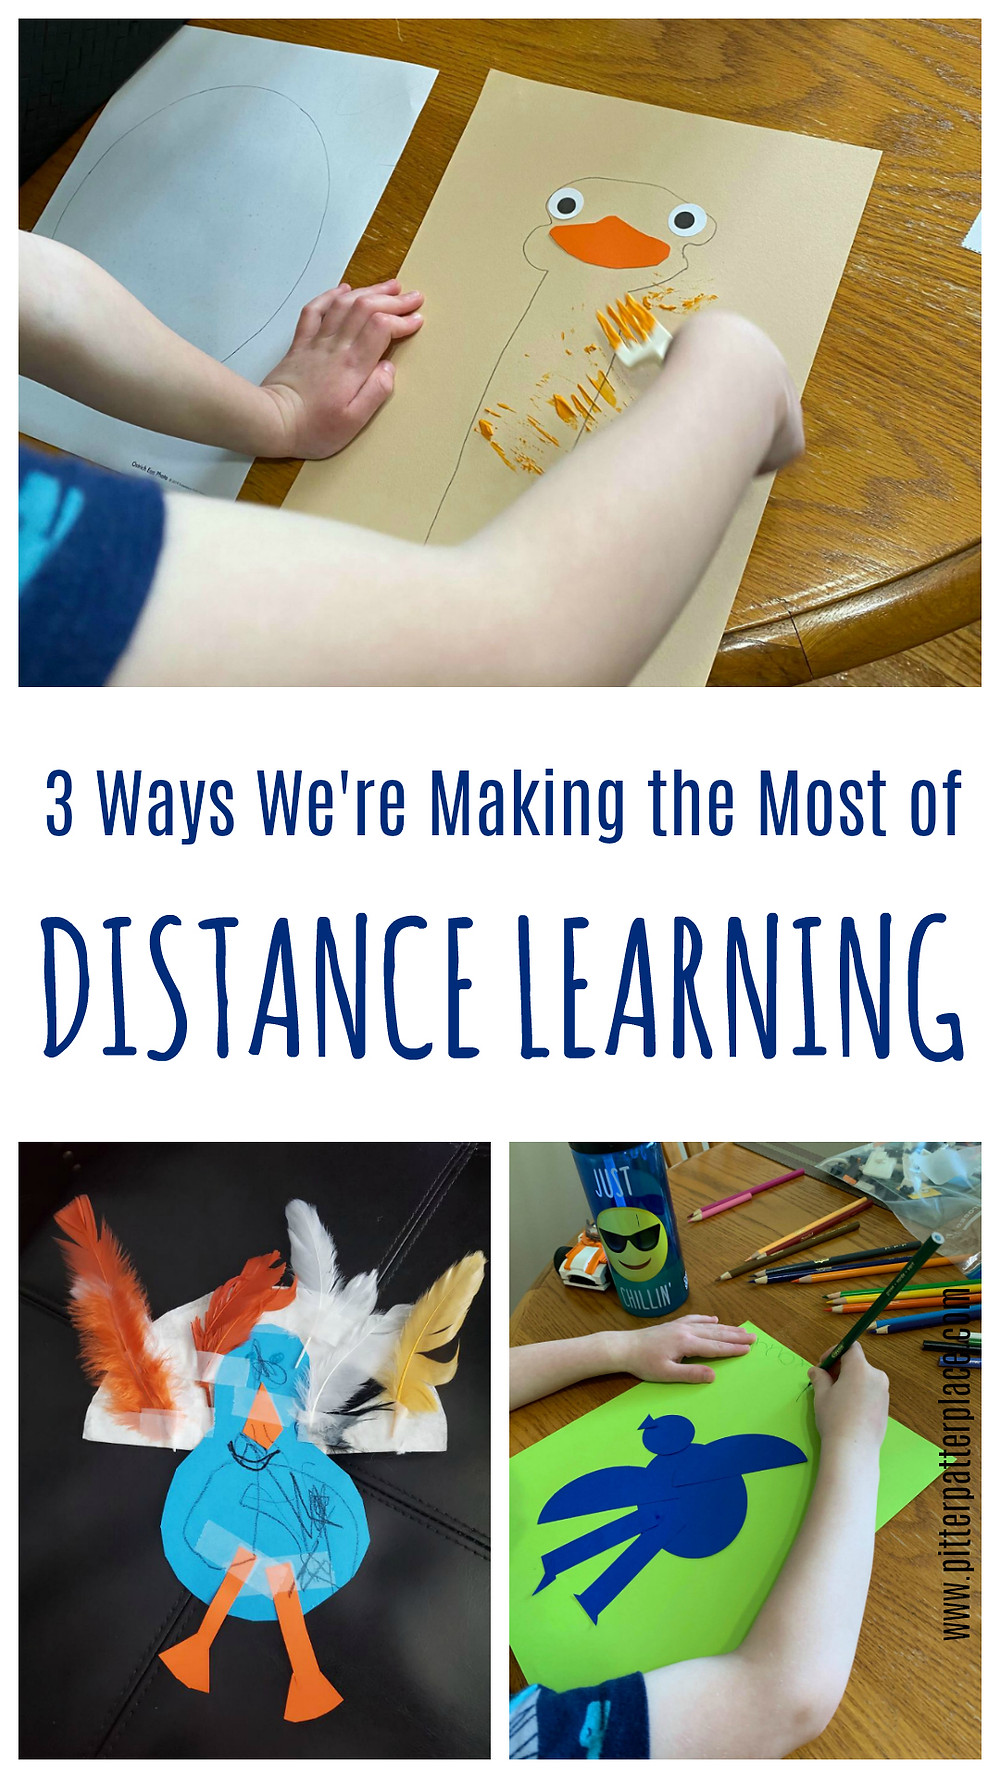 collage of children's artwork with text that reads: 3 Ways We're Making the Most of Distance Learning